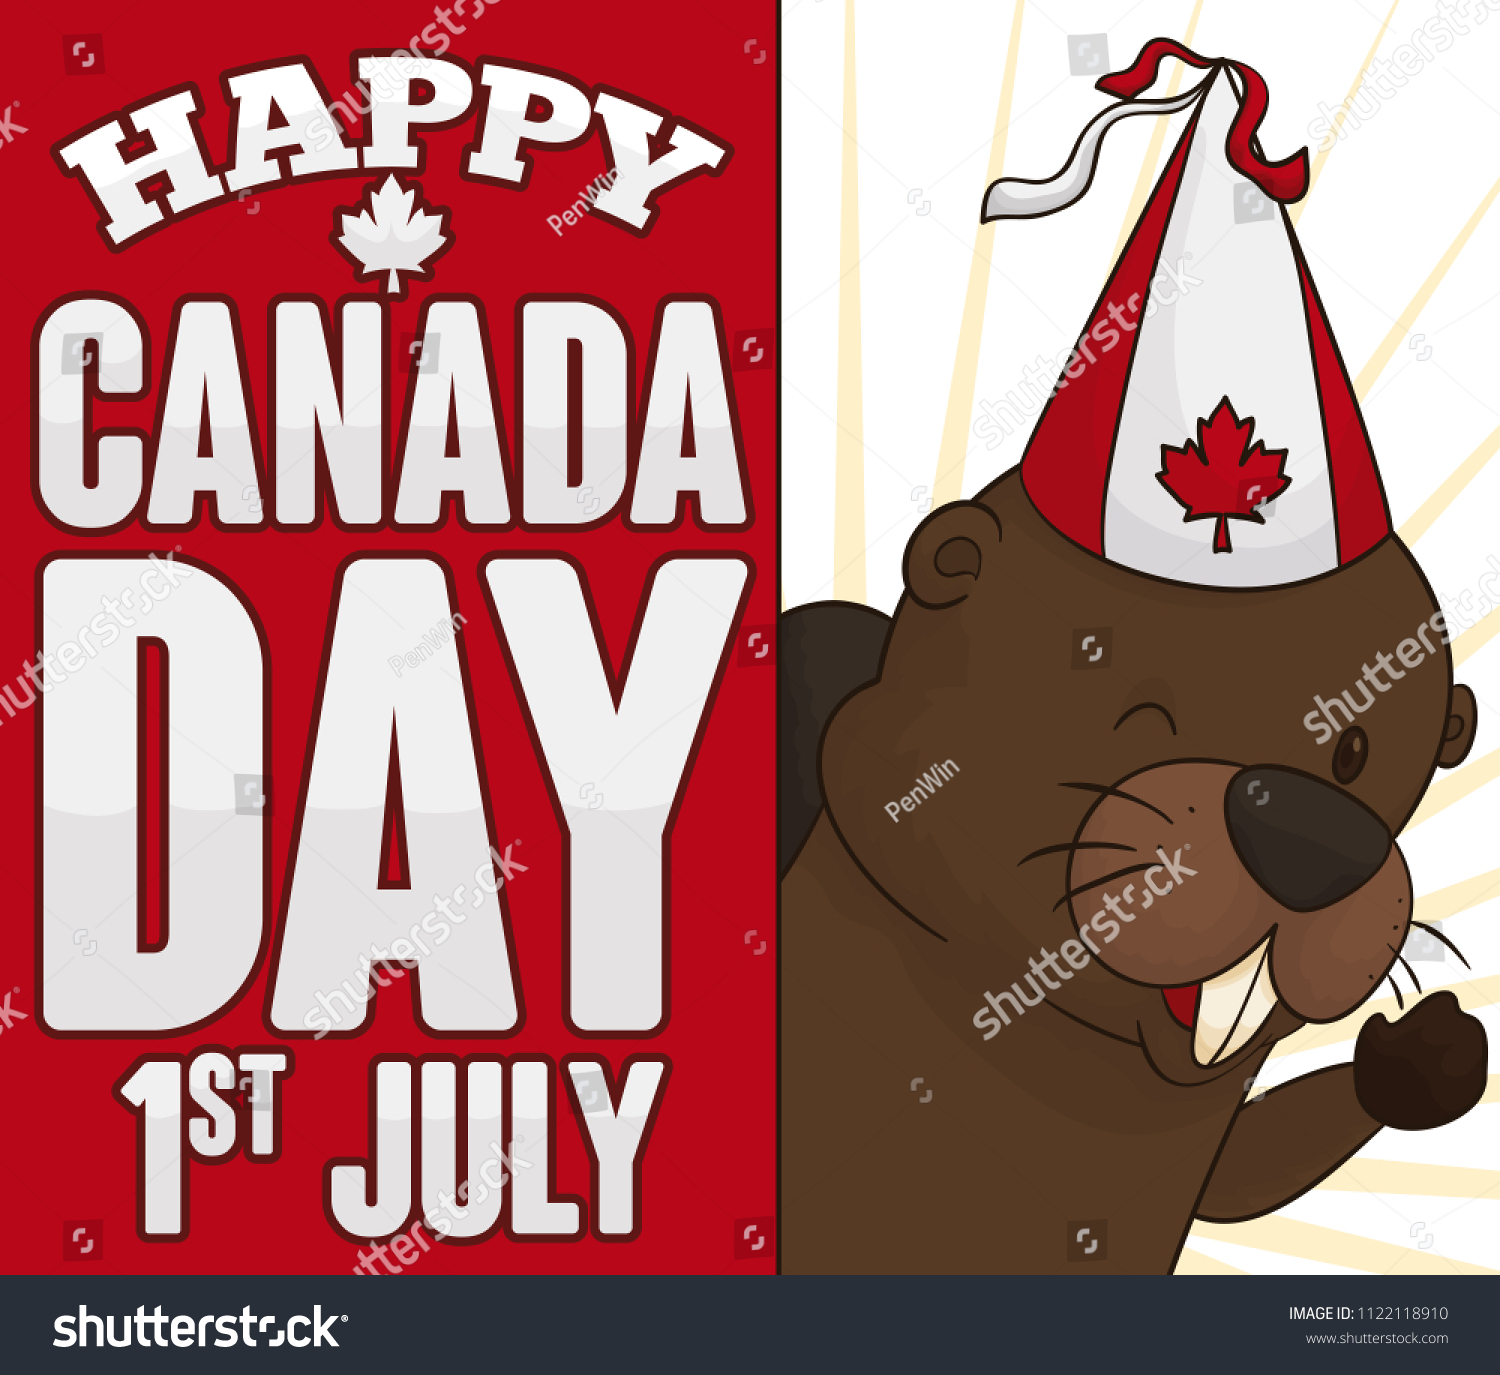 Greeting In Canada Image Collections Greetings Card Design Simple